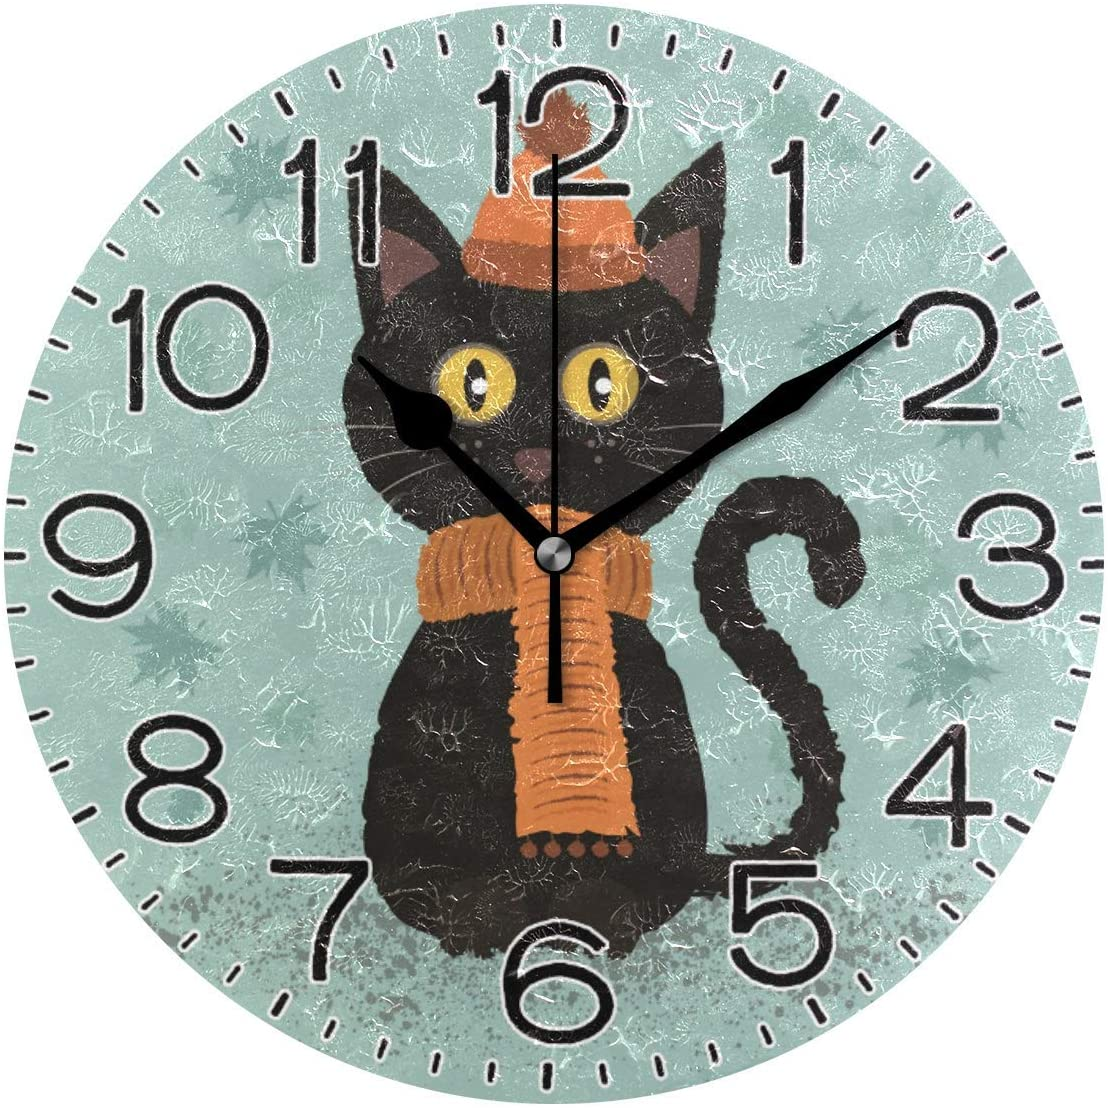 Wall Clock Wooden European Non Ticking Battery Operated Modern Simple Style Design Silent Bedroom Kitchen Living Room Decor 12-inch Clocks Color : A